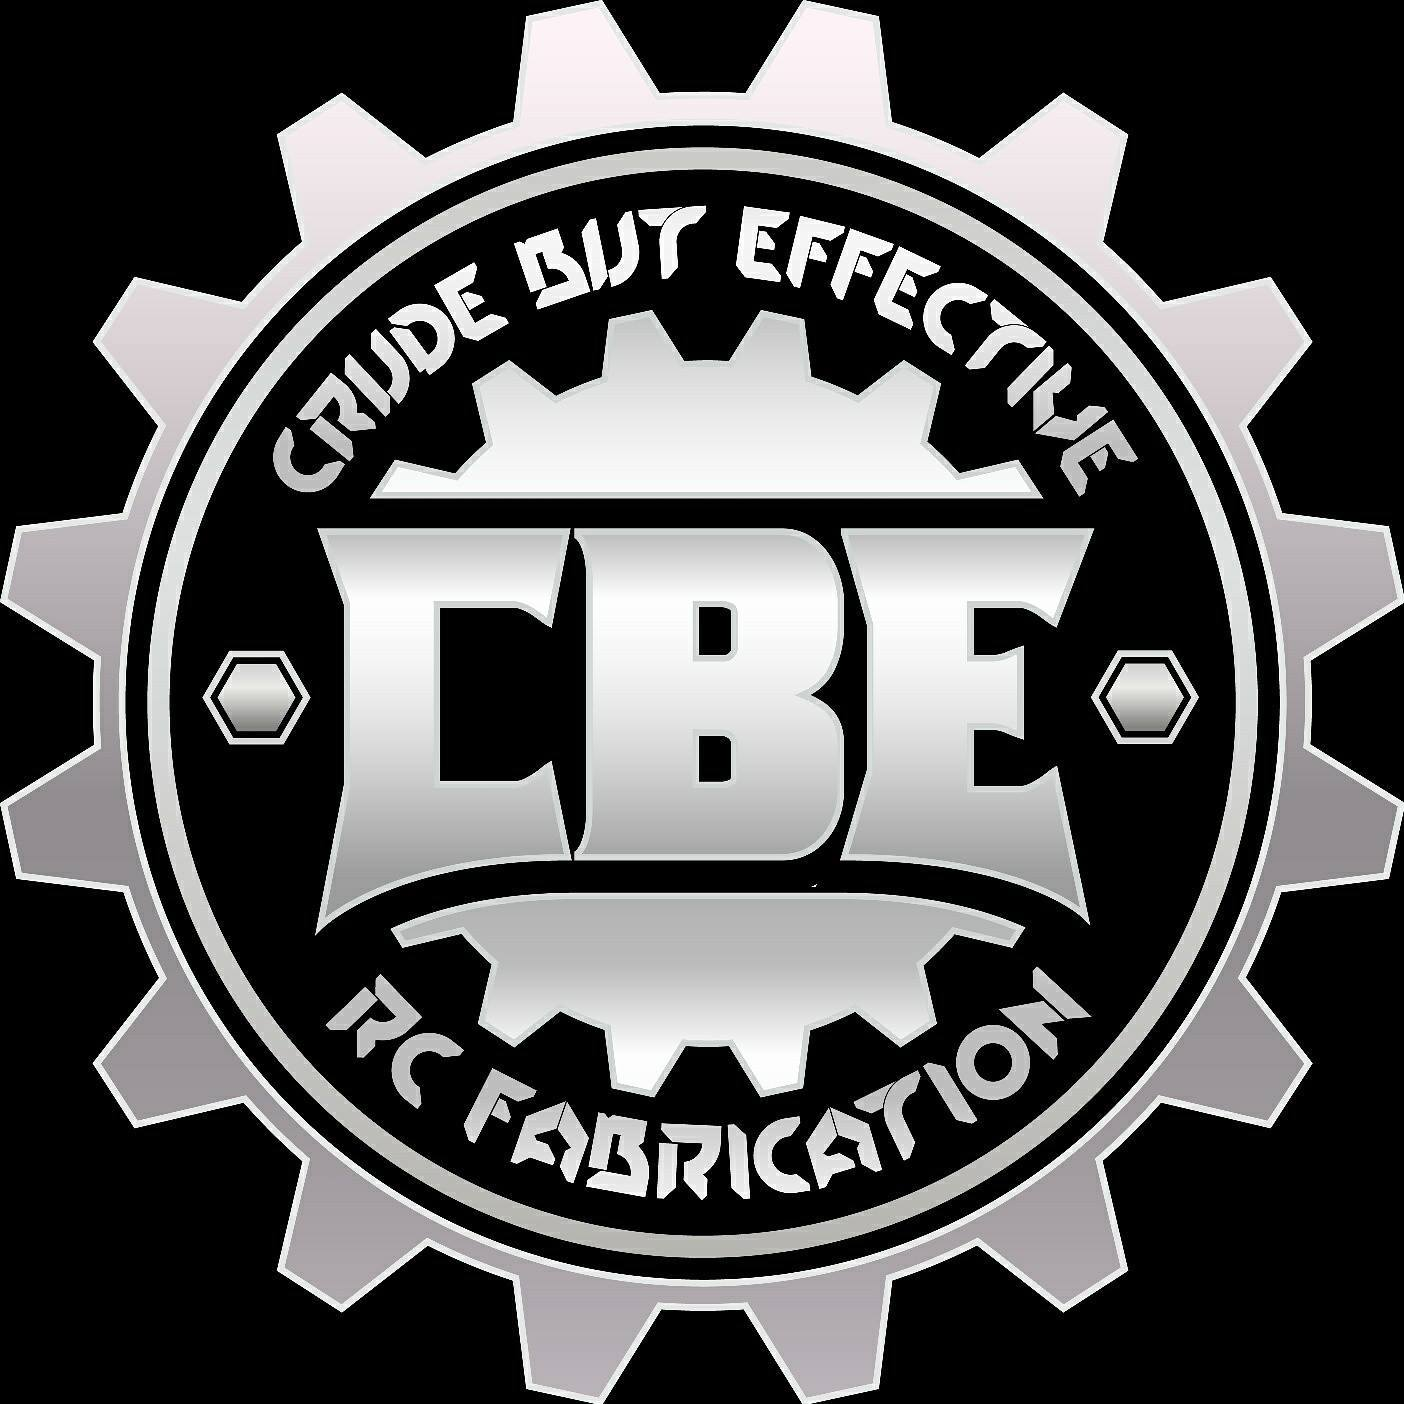 CBE RC Fabrication